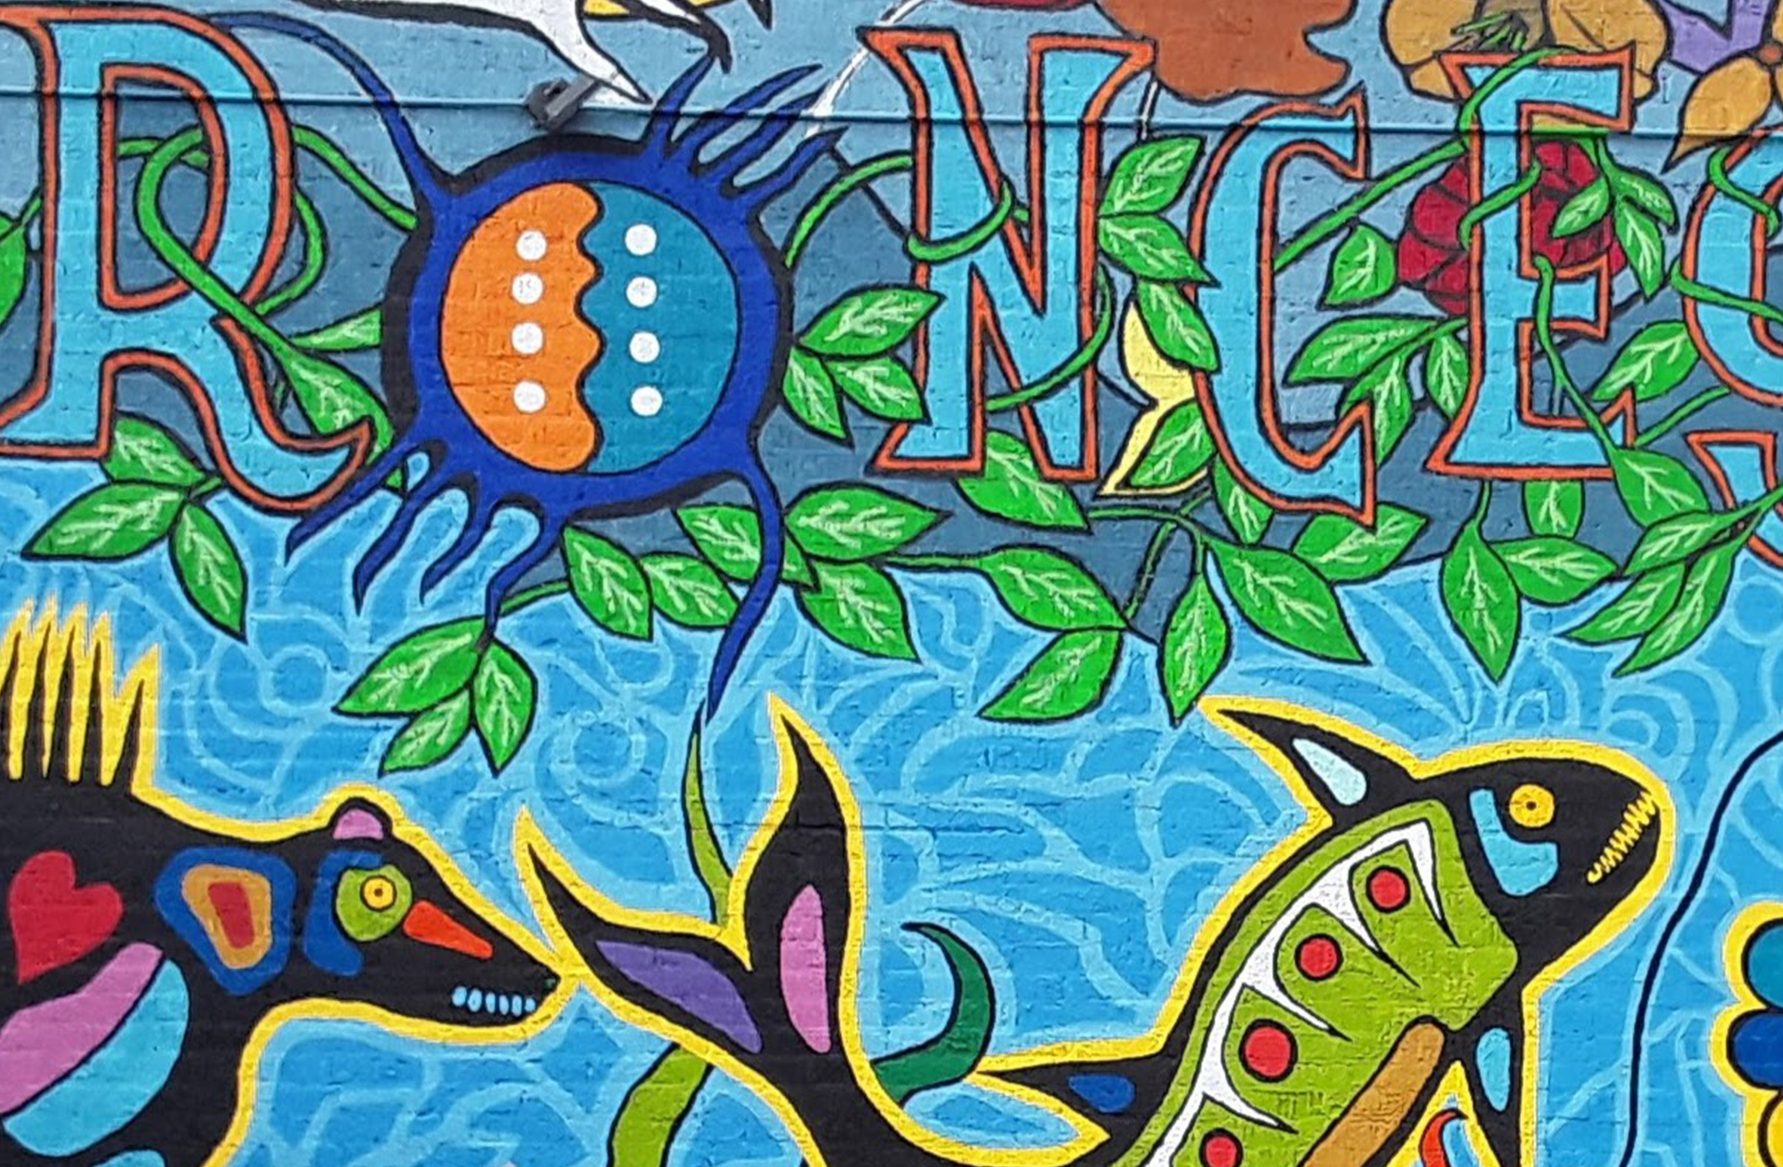 Woodlands style mural by Philip Cote